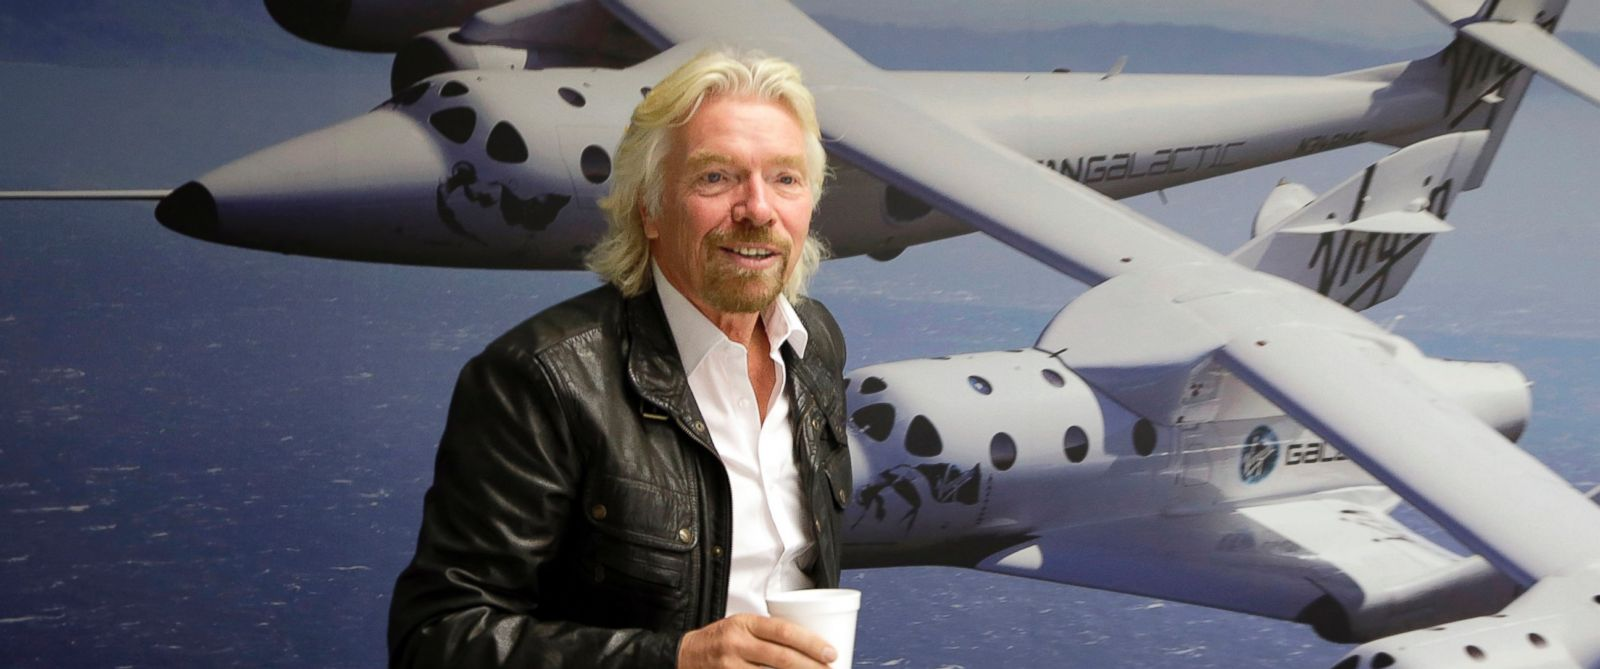 PHOTO: British entrepreneur Richard Branson is seen at the Virgin Galactic hangar at Mojave Air and Space Port in Mojave, Calif., Sept. 25, 2013.